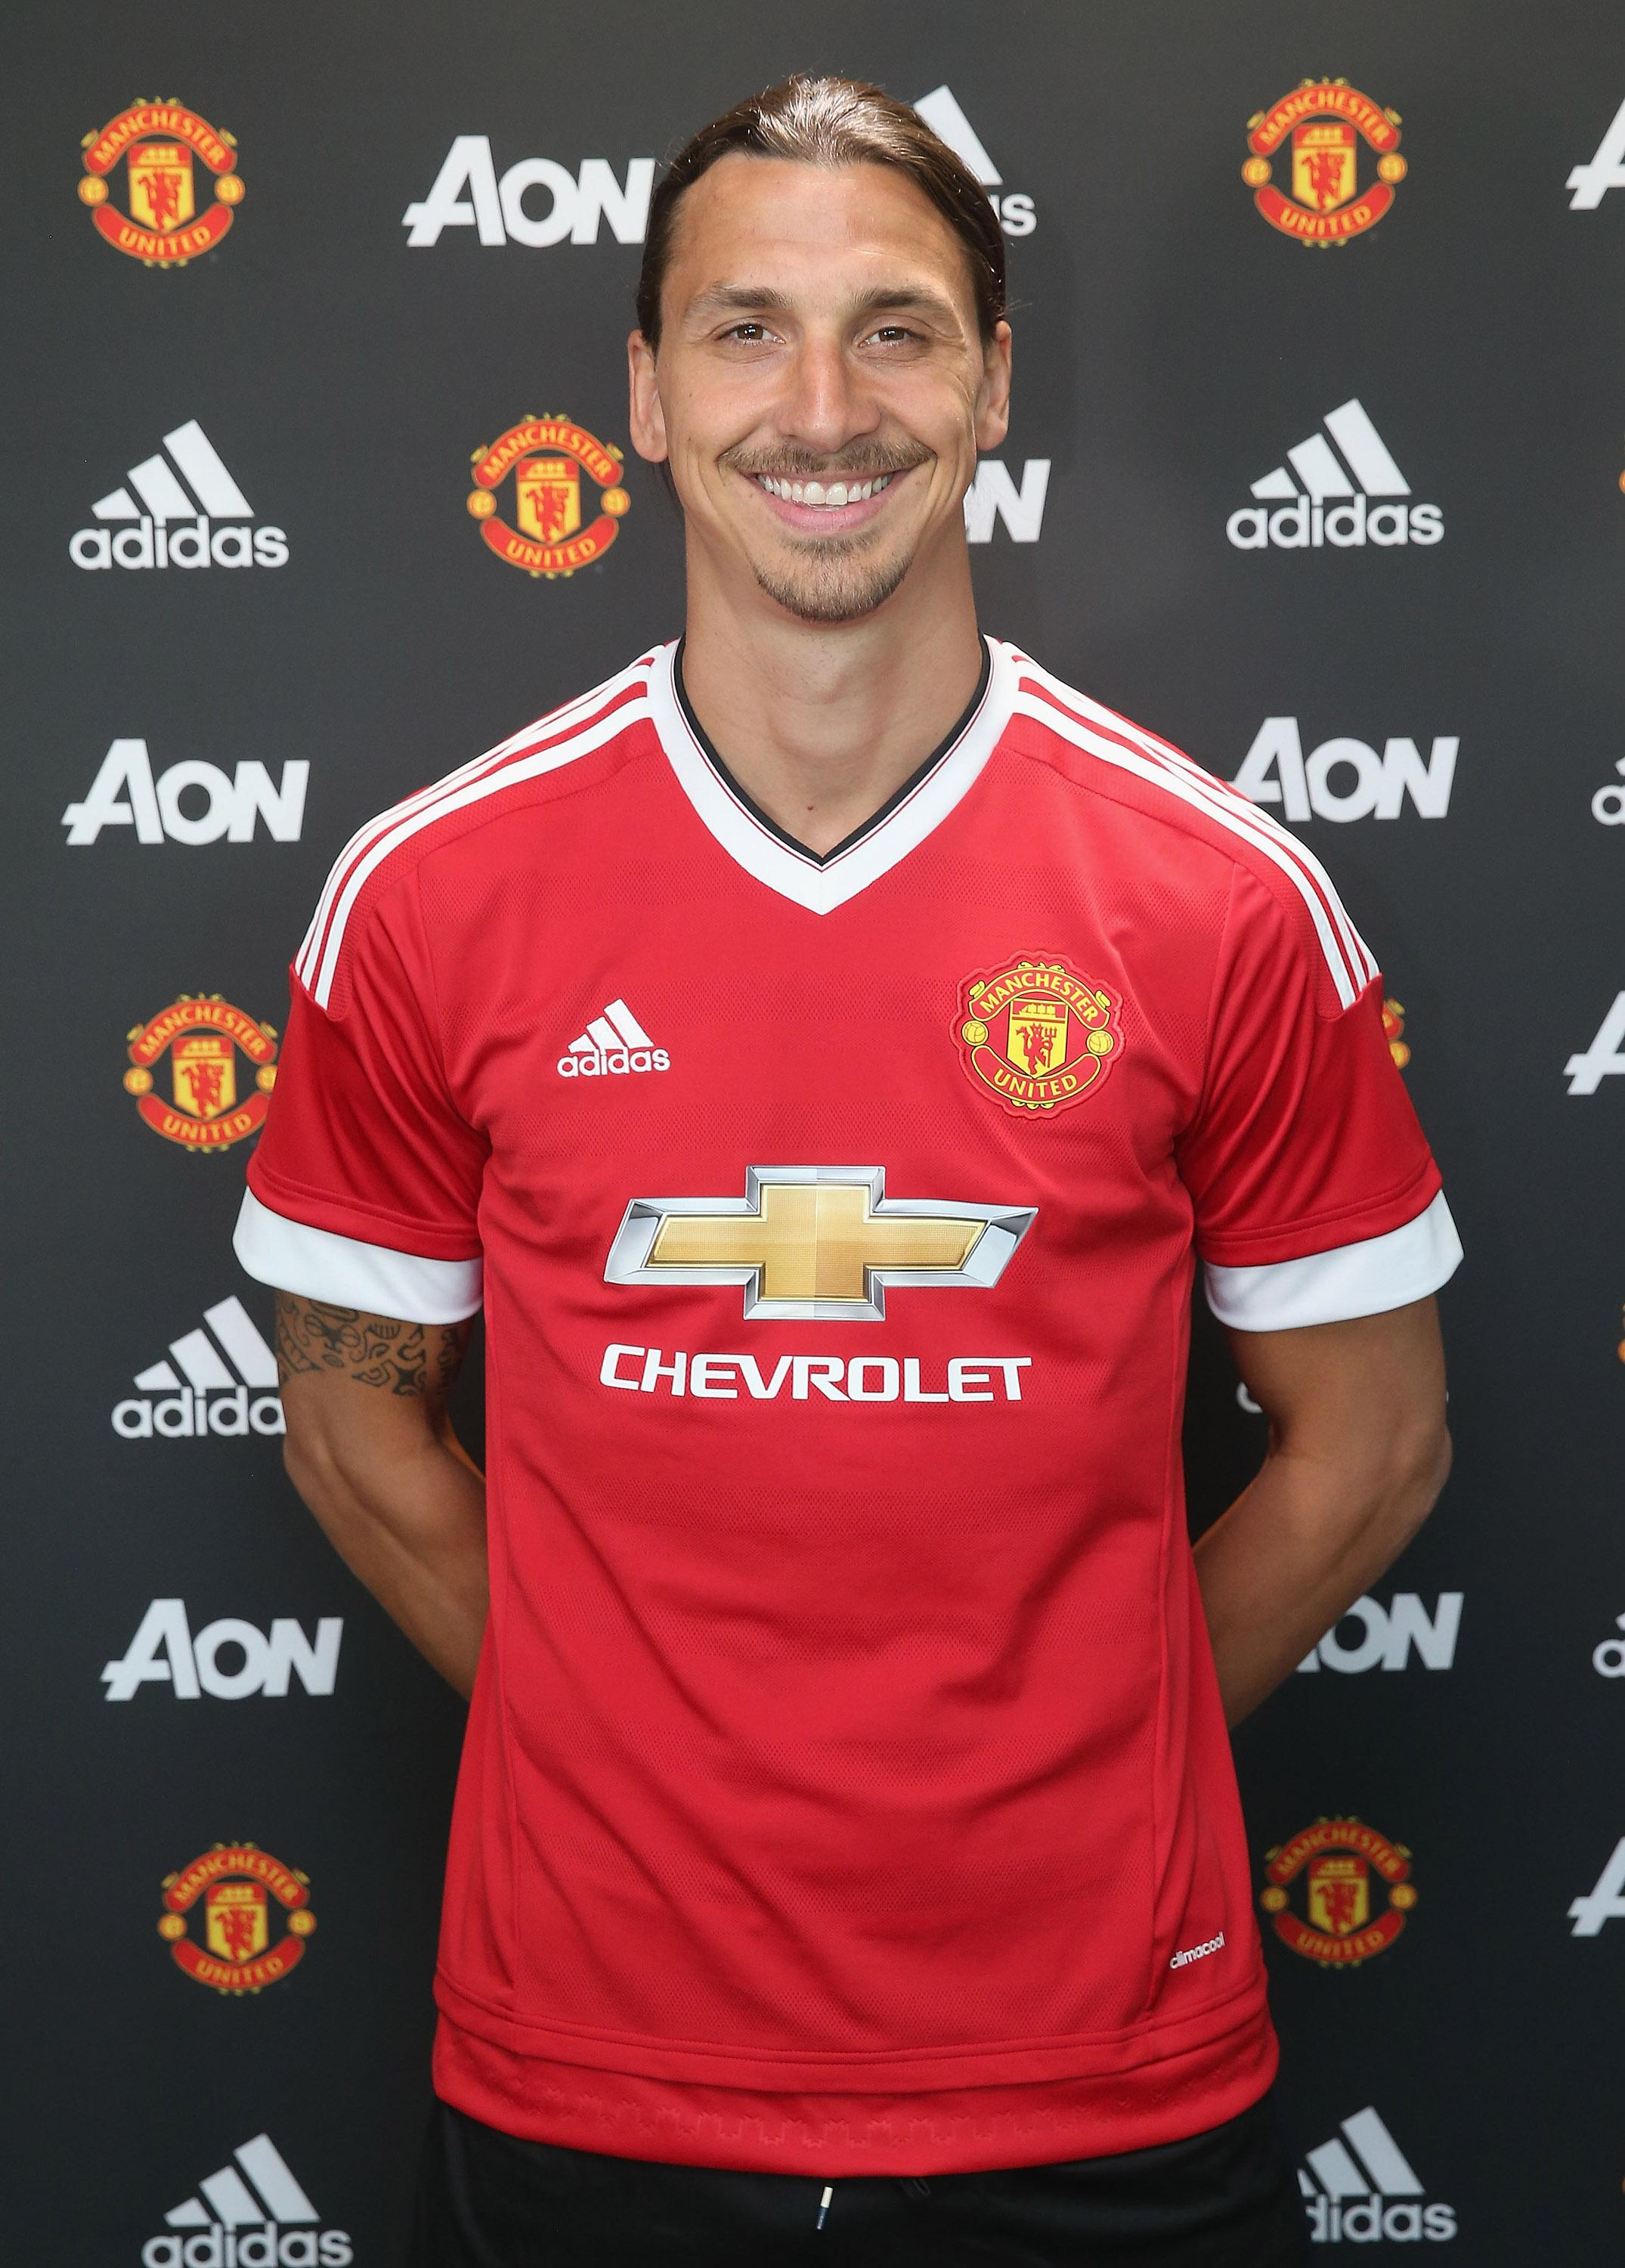 e6e7576ef Manchester United sign striker Ibrahimovic